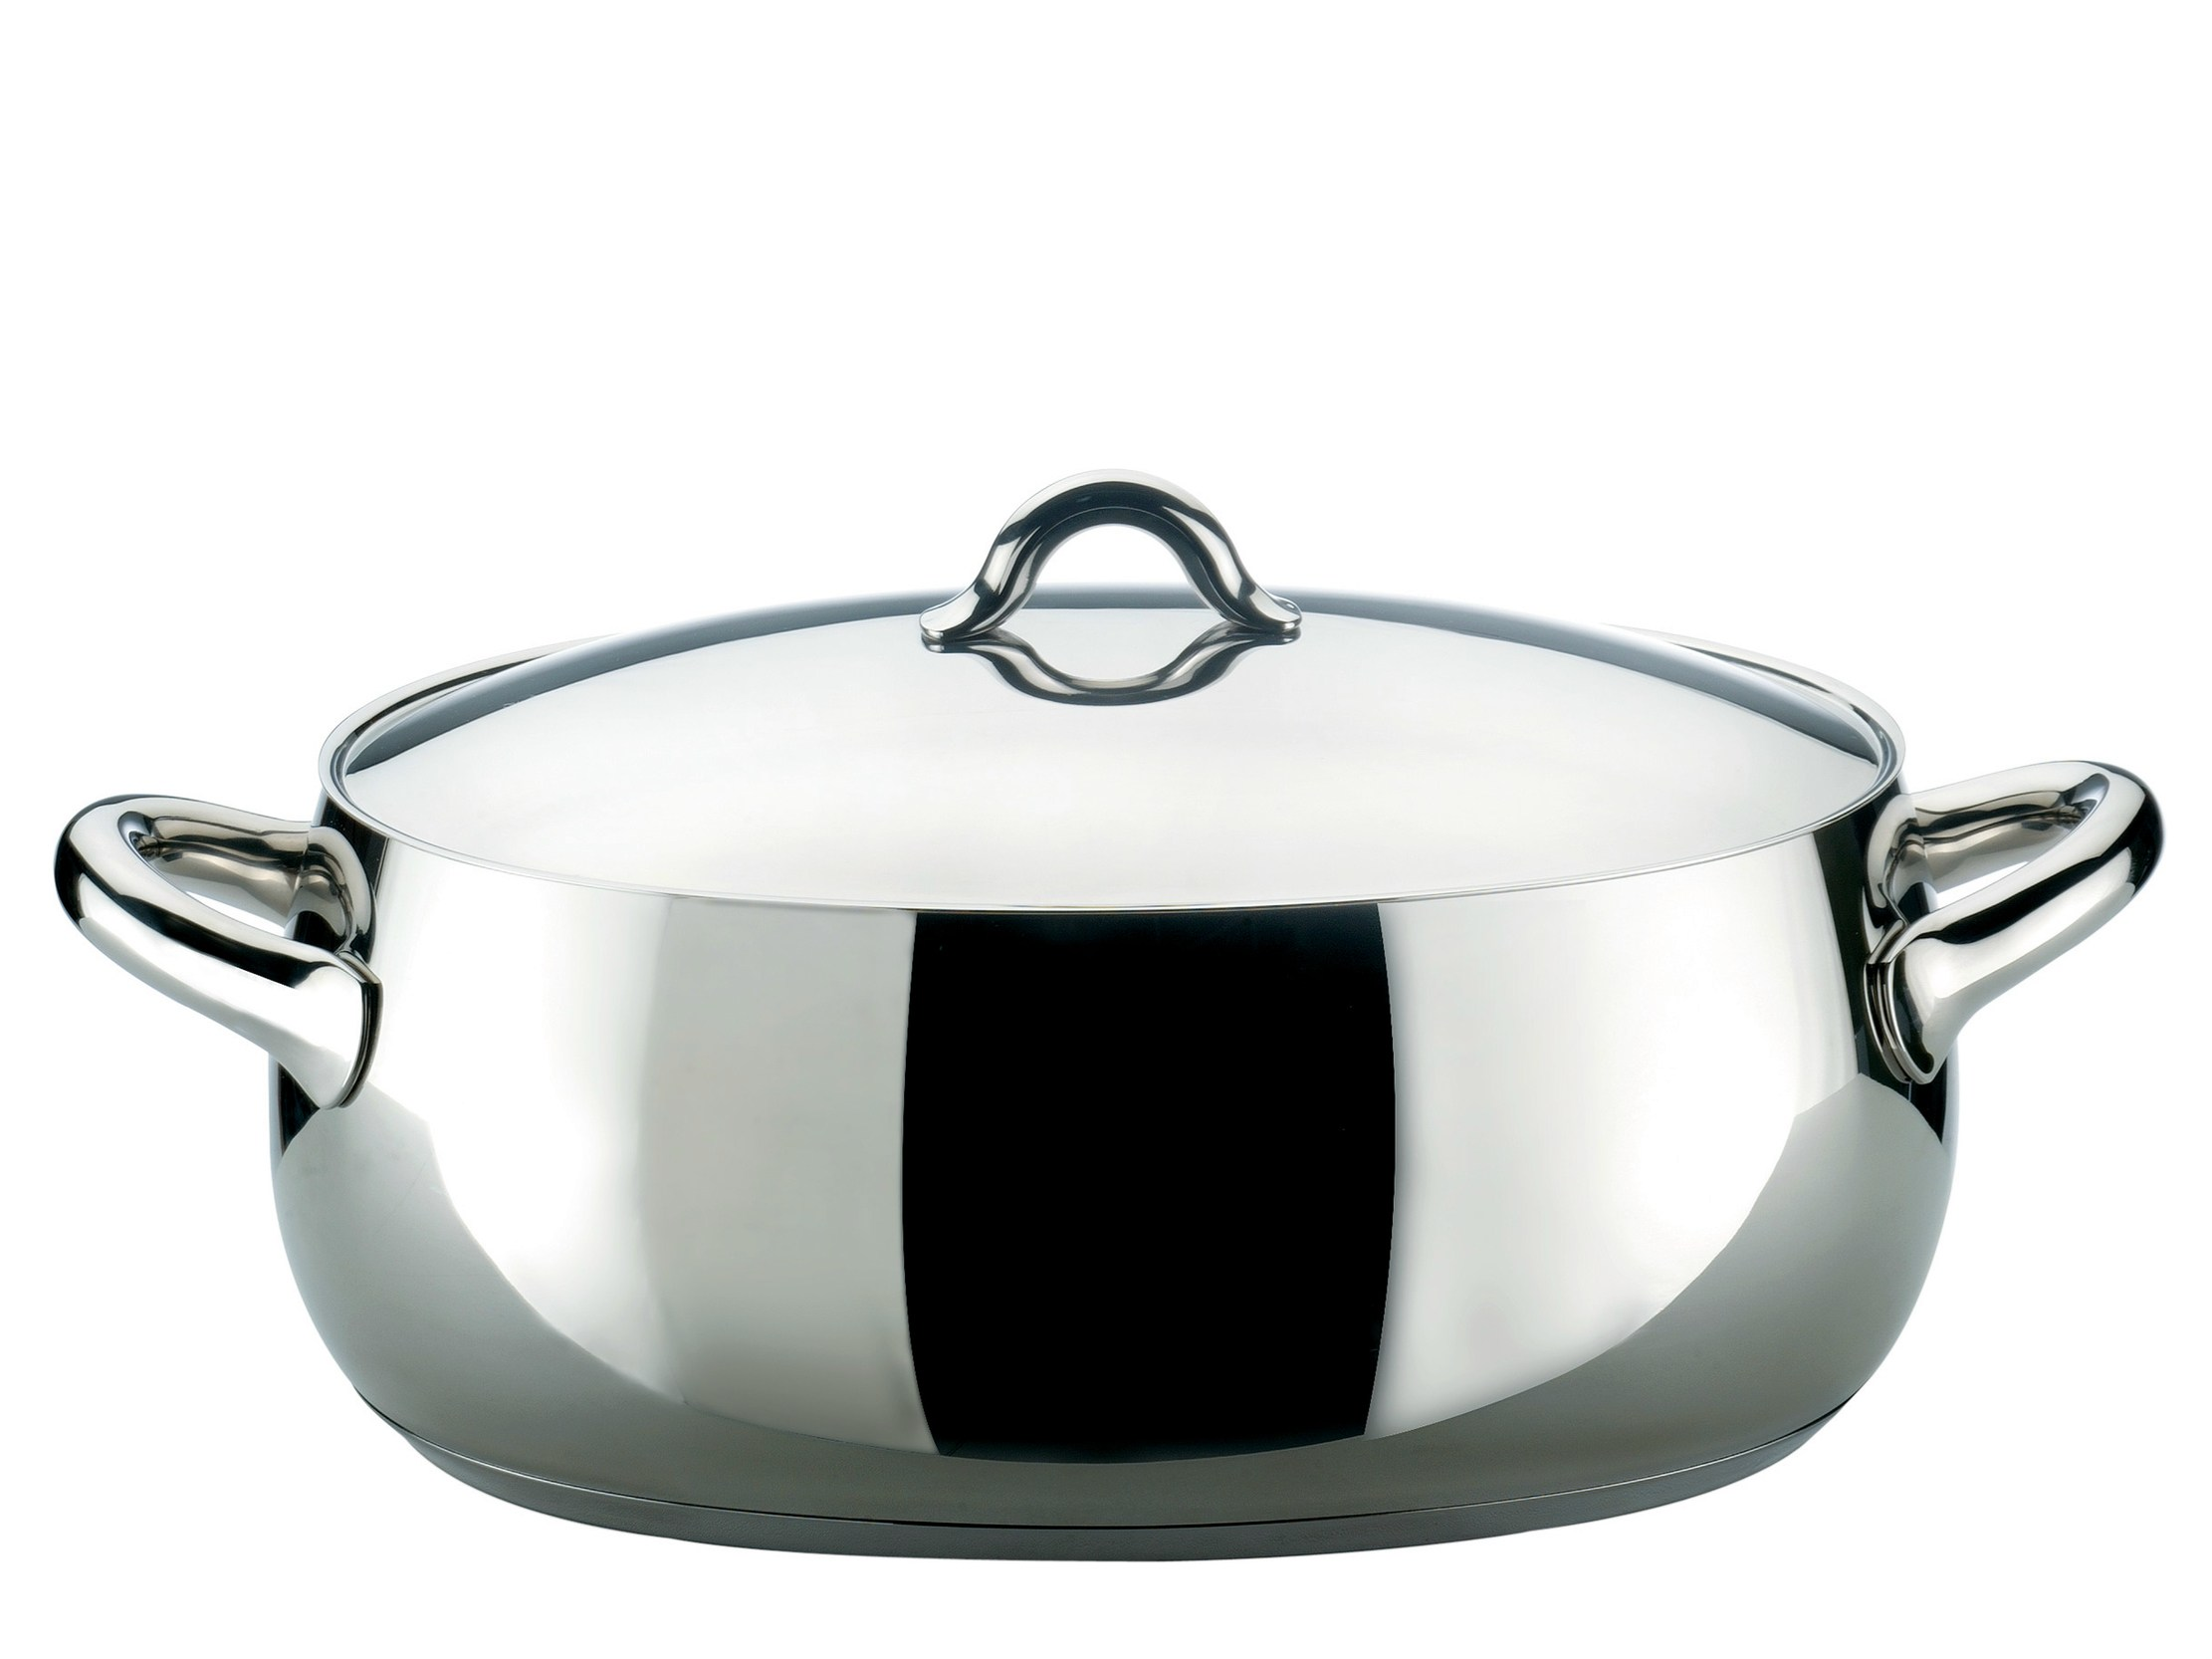 mami casserole by alessi design stefano giovannoni. Black Bedroom Furniture Sets. Home Design Ideas